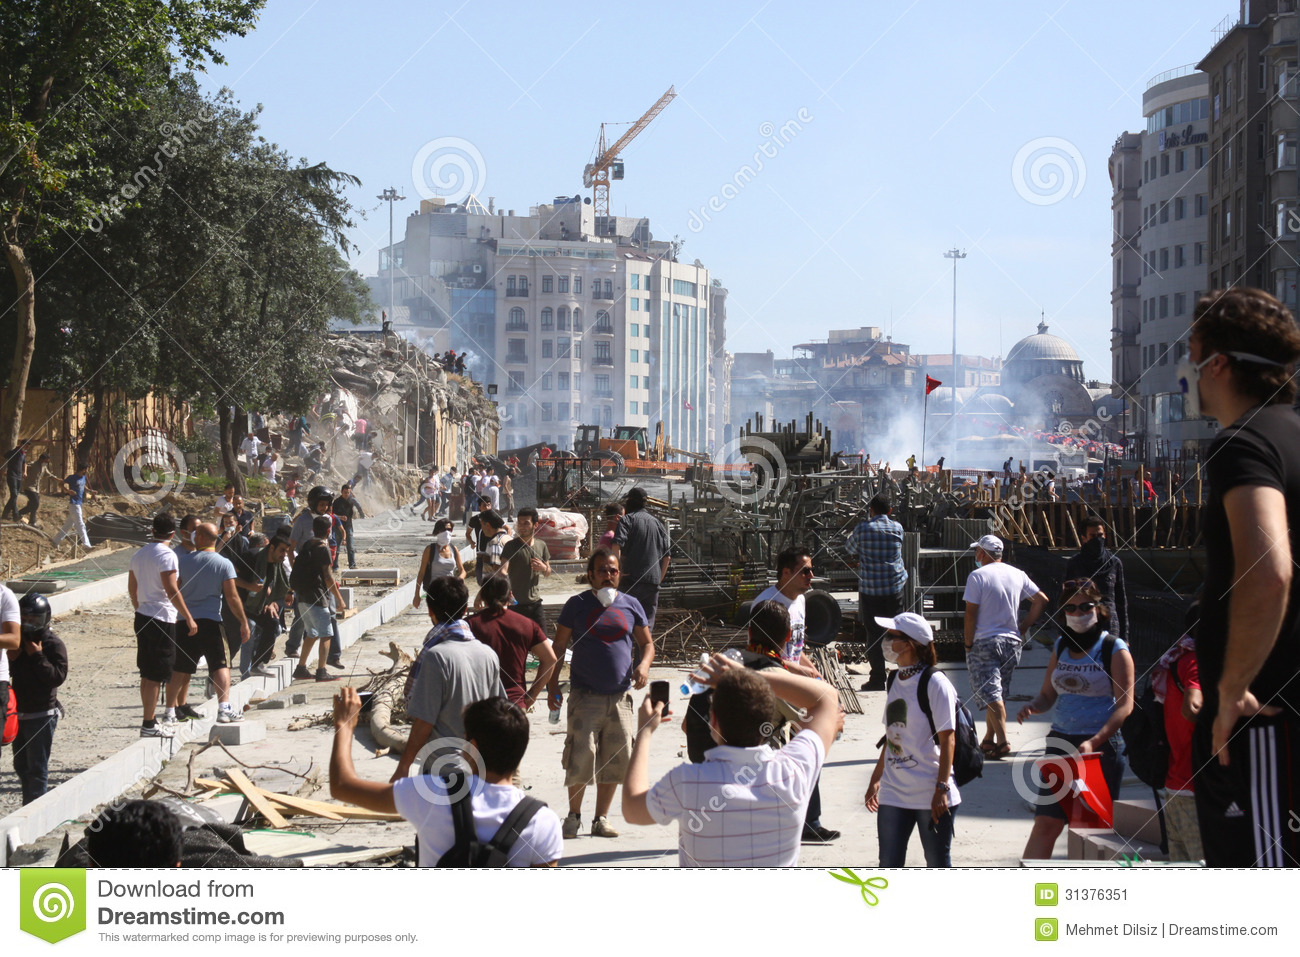 Remembering the Gezi Park protests and the dream of a different Turkey